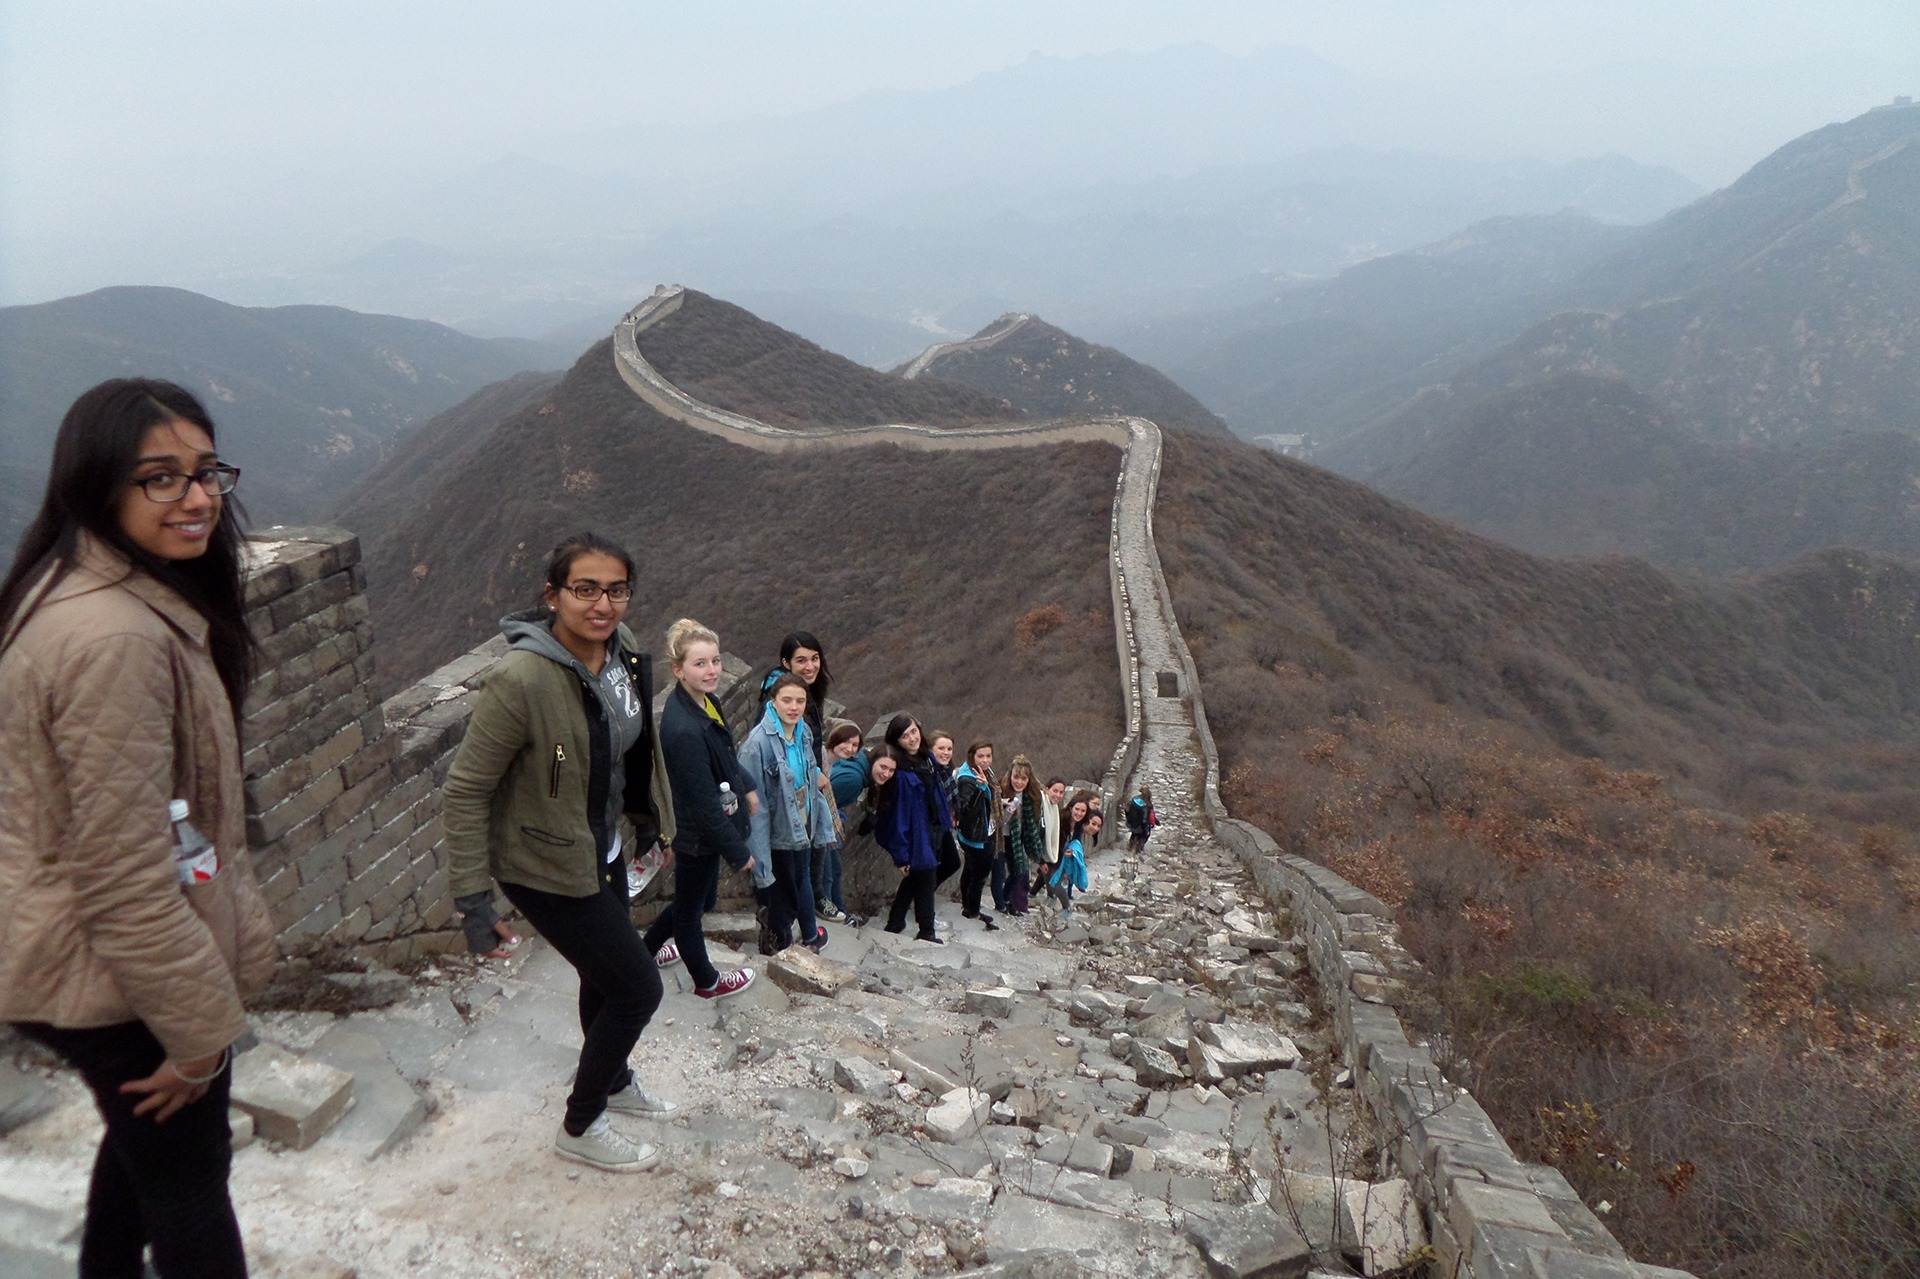 music business studies faculty-led mandarin school trip to china